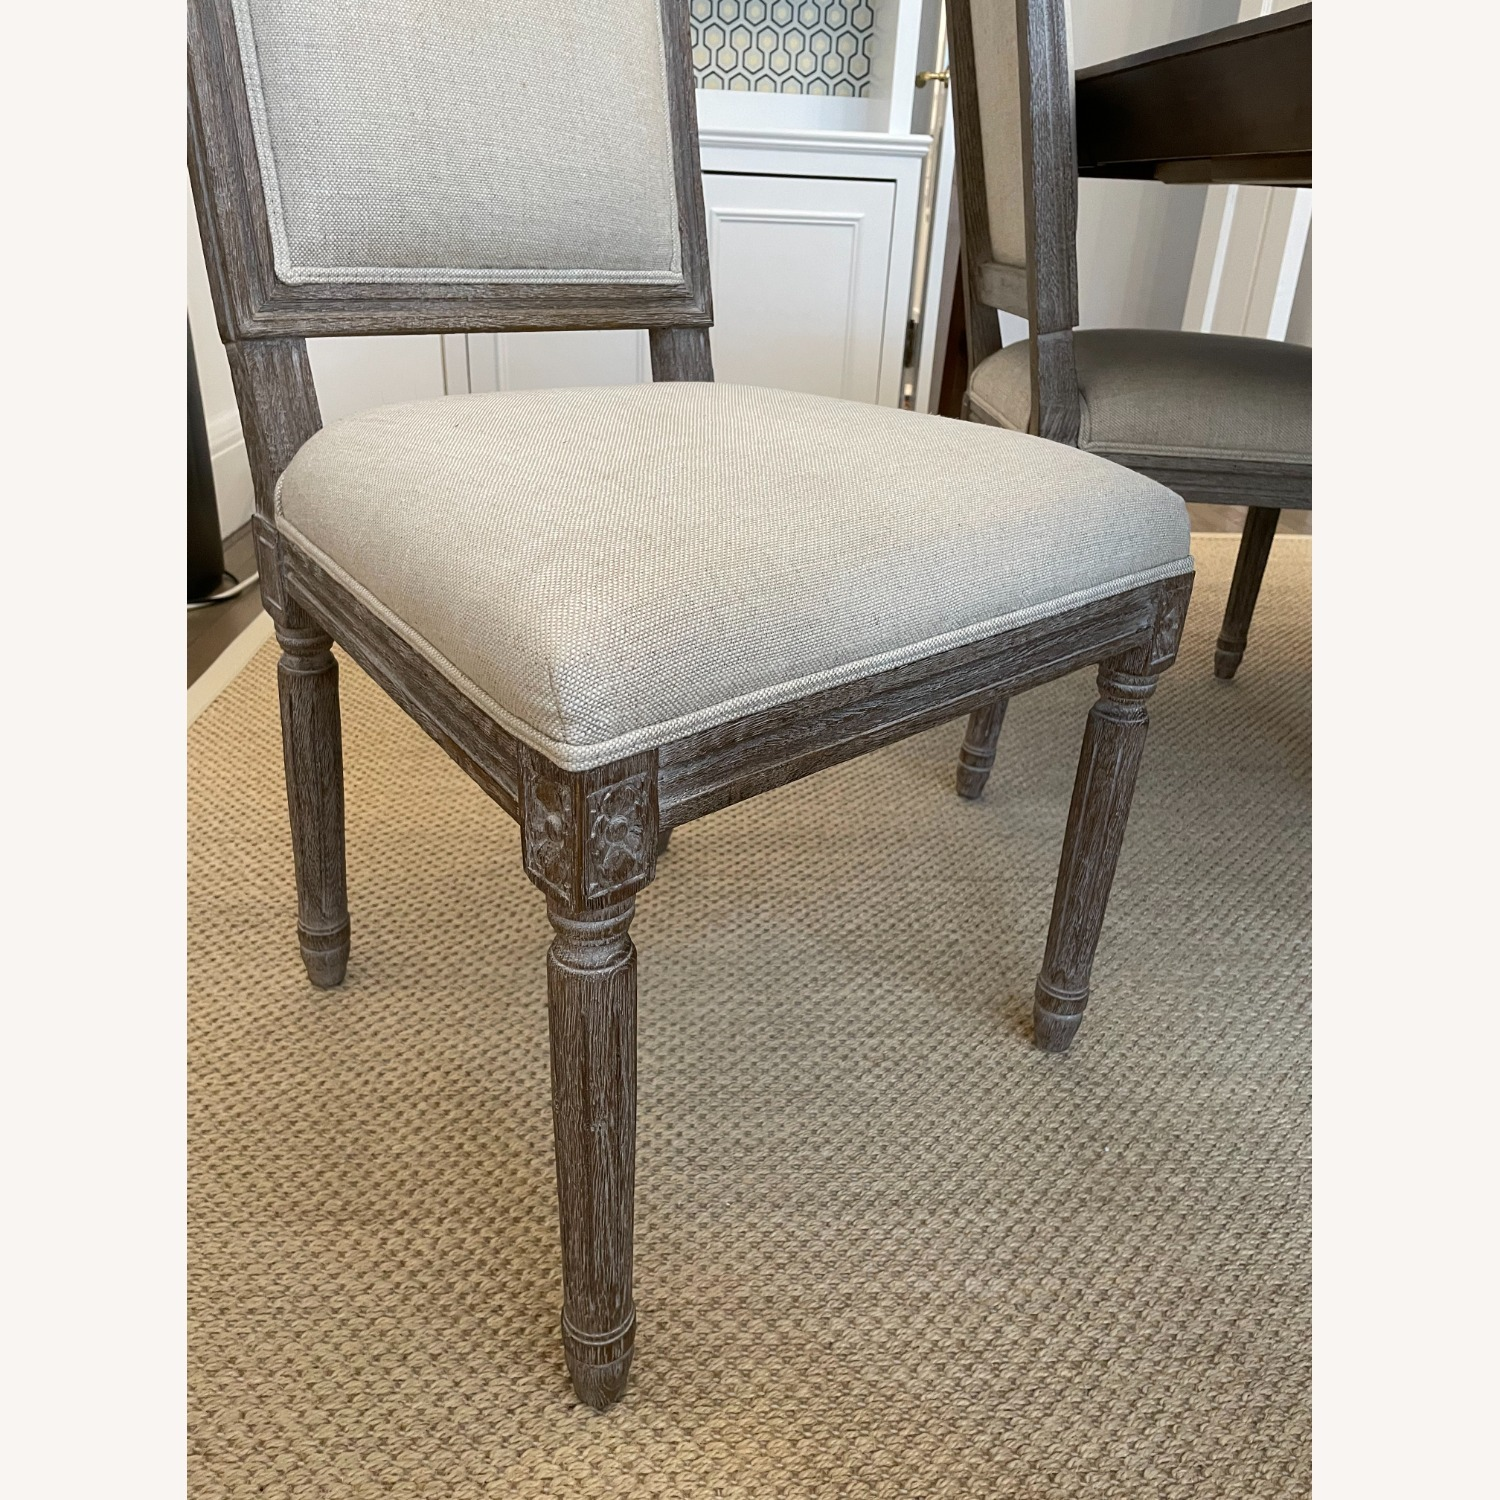 Restoration Hardware French Dining End Chairs (4) - image-4